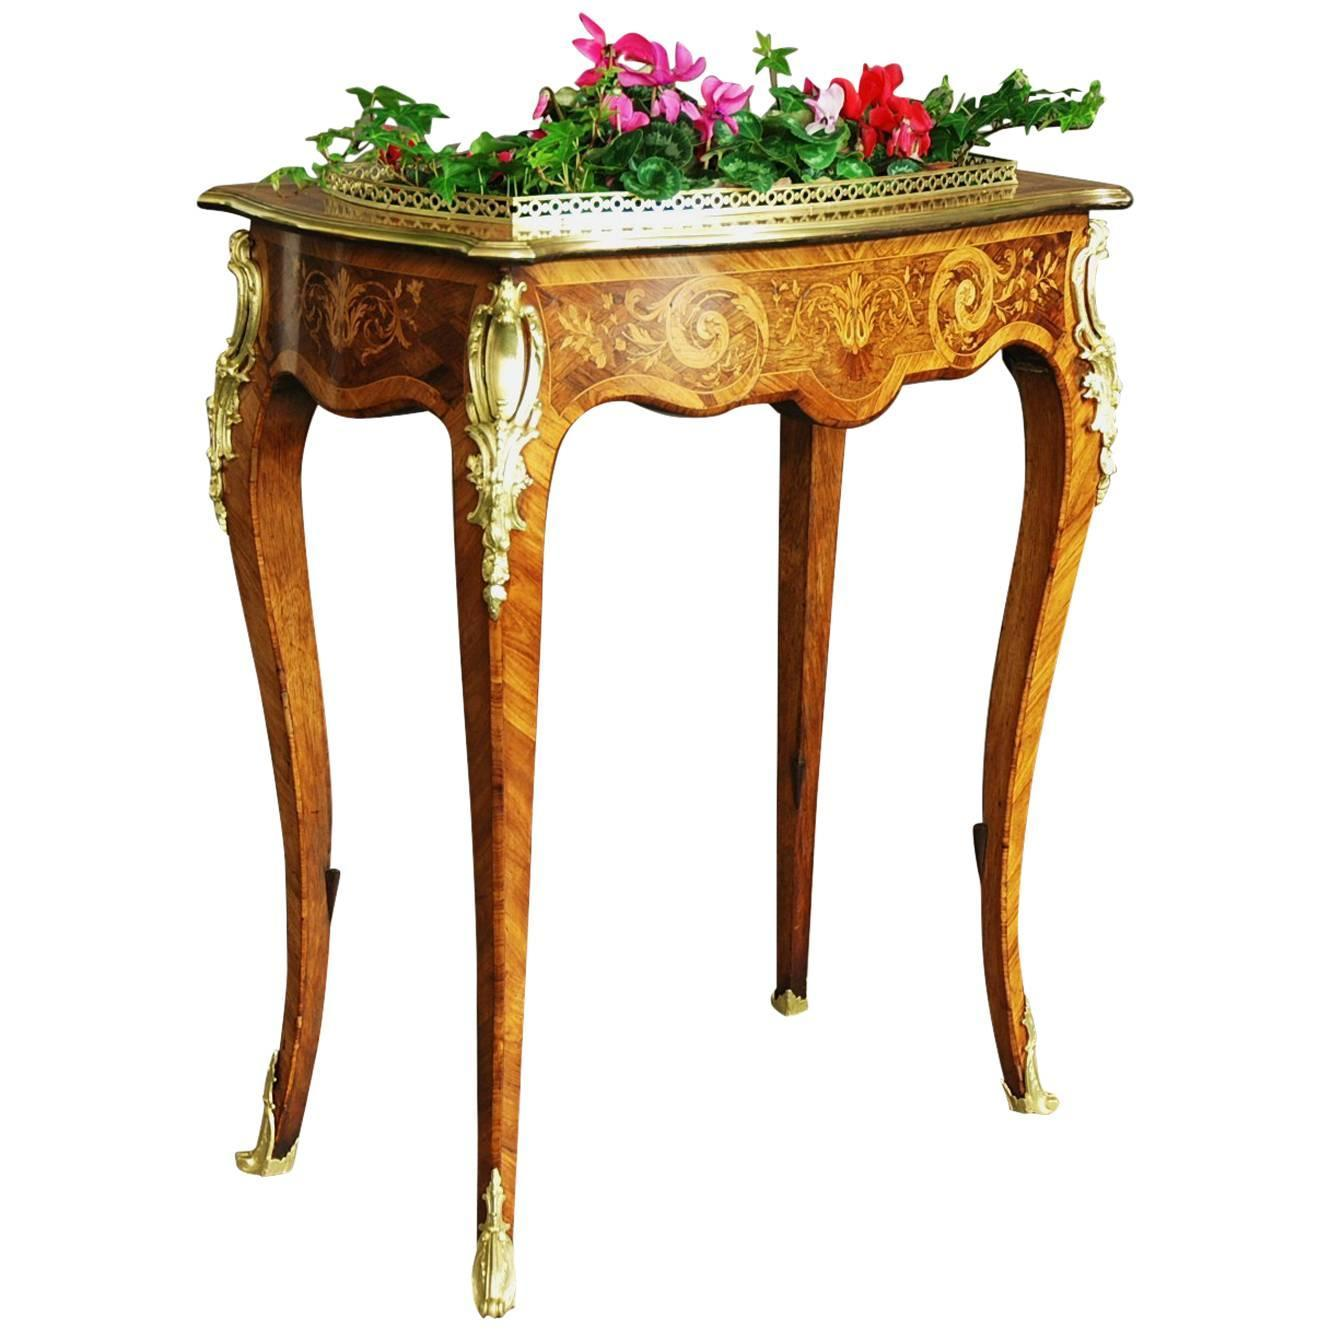 Edwards and Roberts Inlaid Plant Stand or Jardiniere at